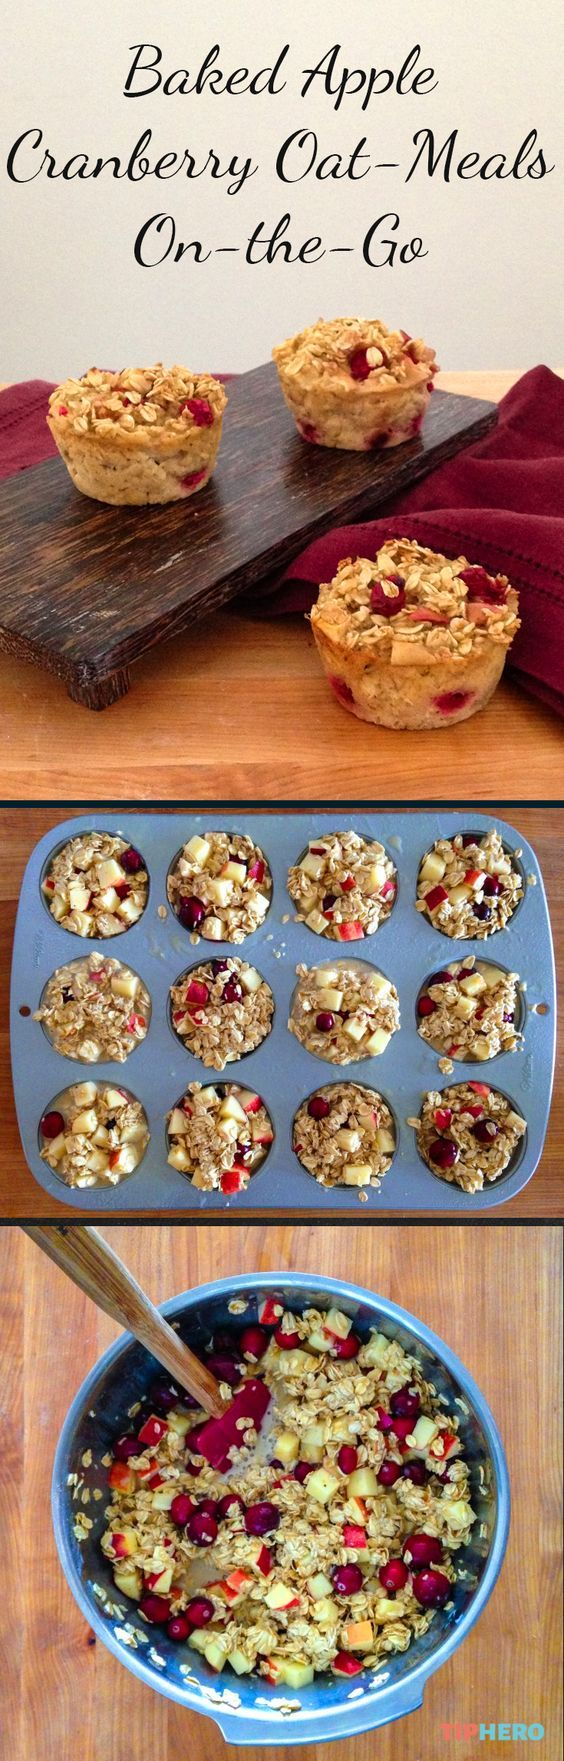 Baked Apple Cranberry Oat-Meals On-the-Go | Start your day off right with this healthy breakfast muffin. Bake ahead and grab and go! Click for the recipe.